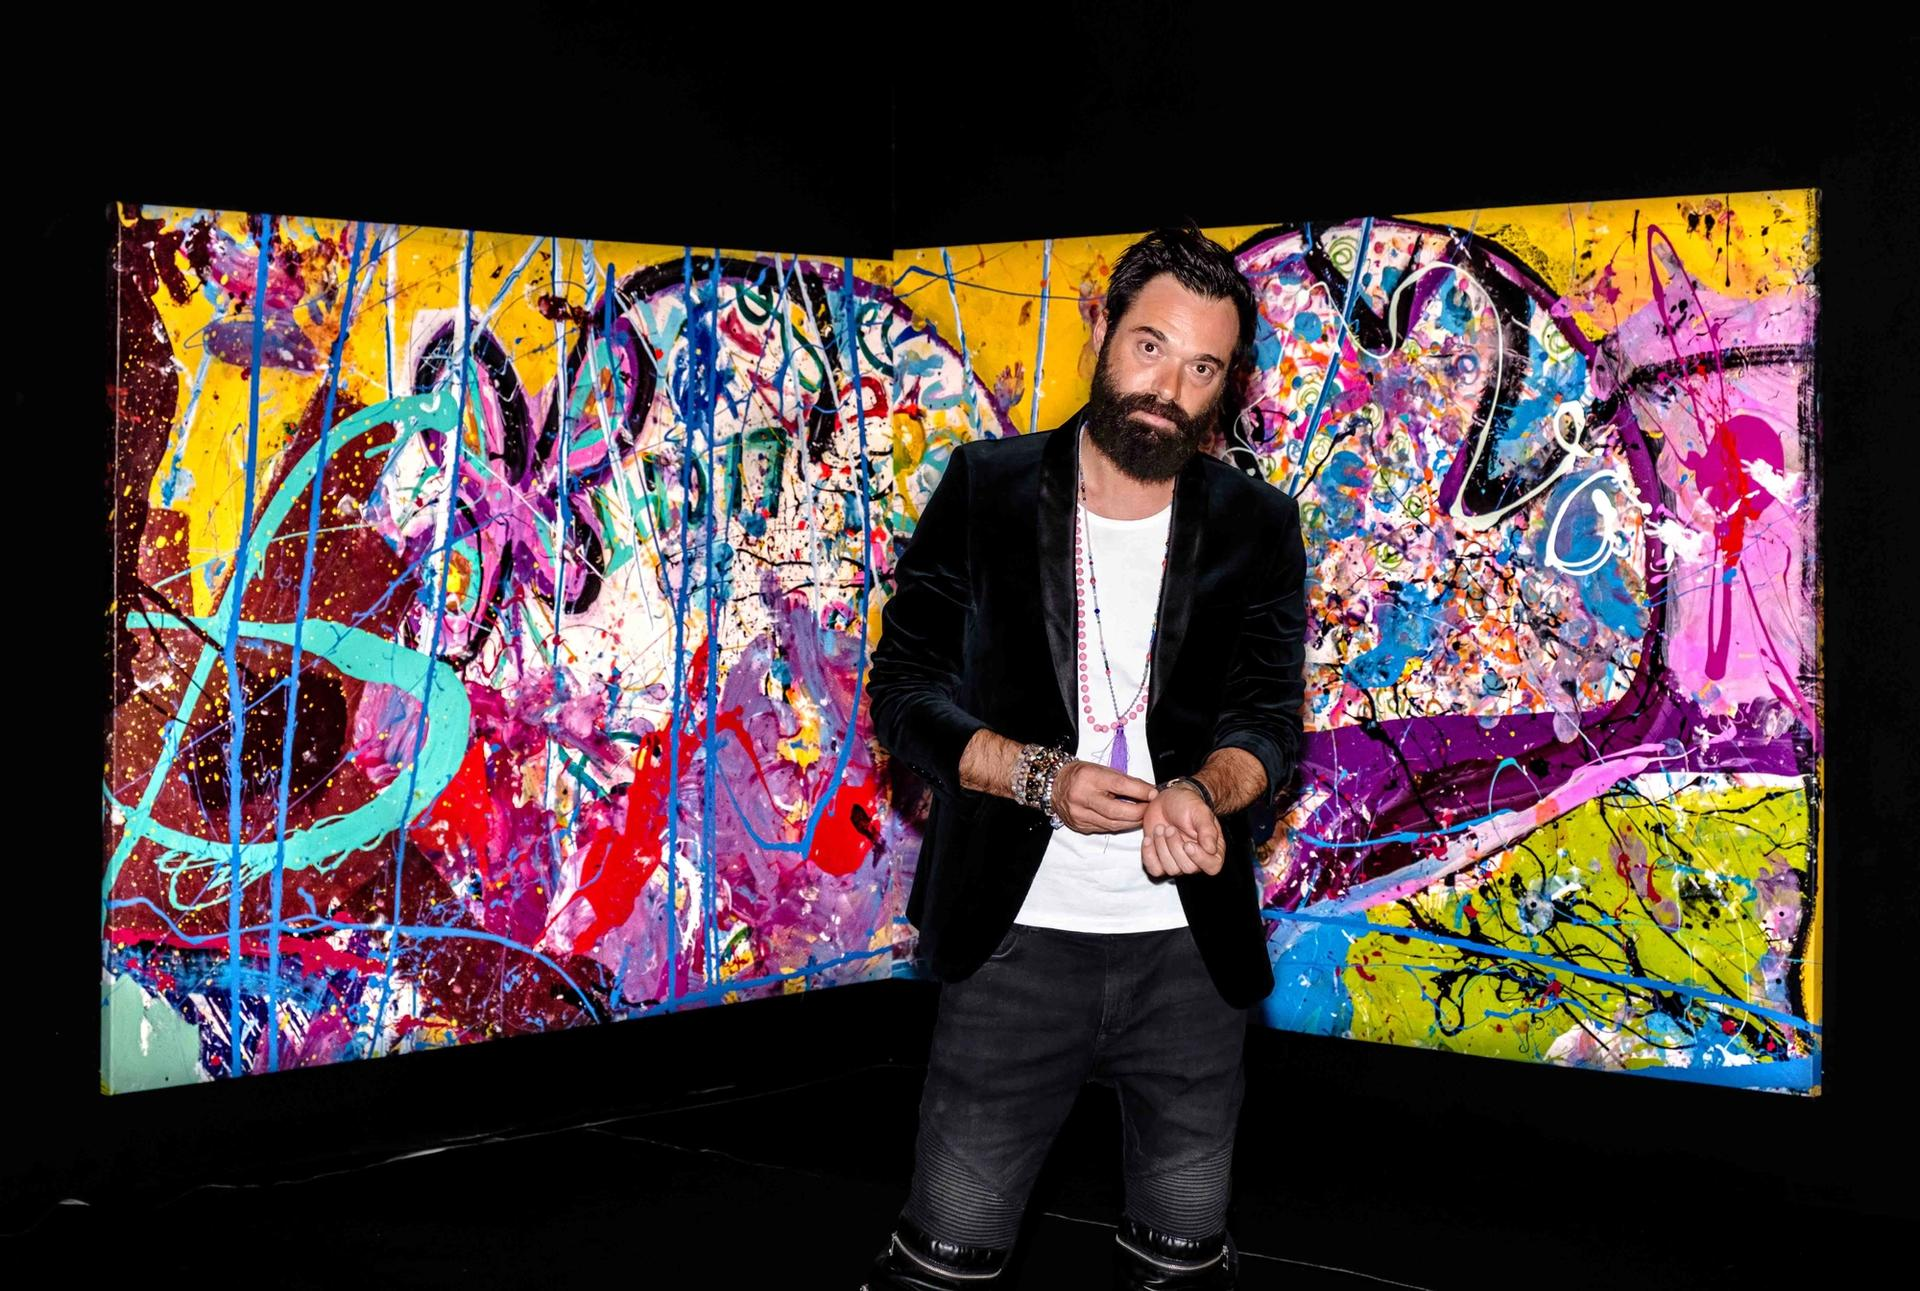 Sacha Jafri in front of part of the painting Courtesy of Humanity Inspired